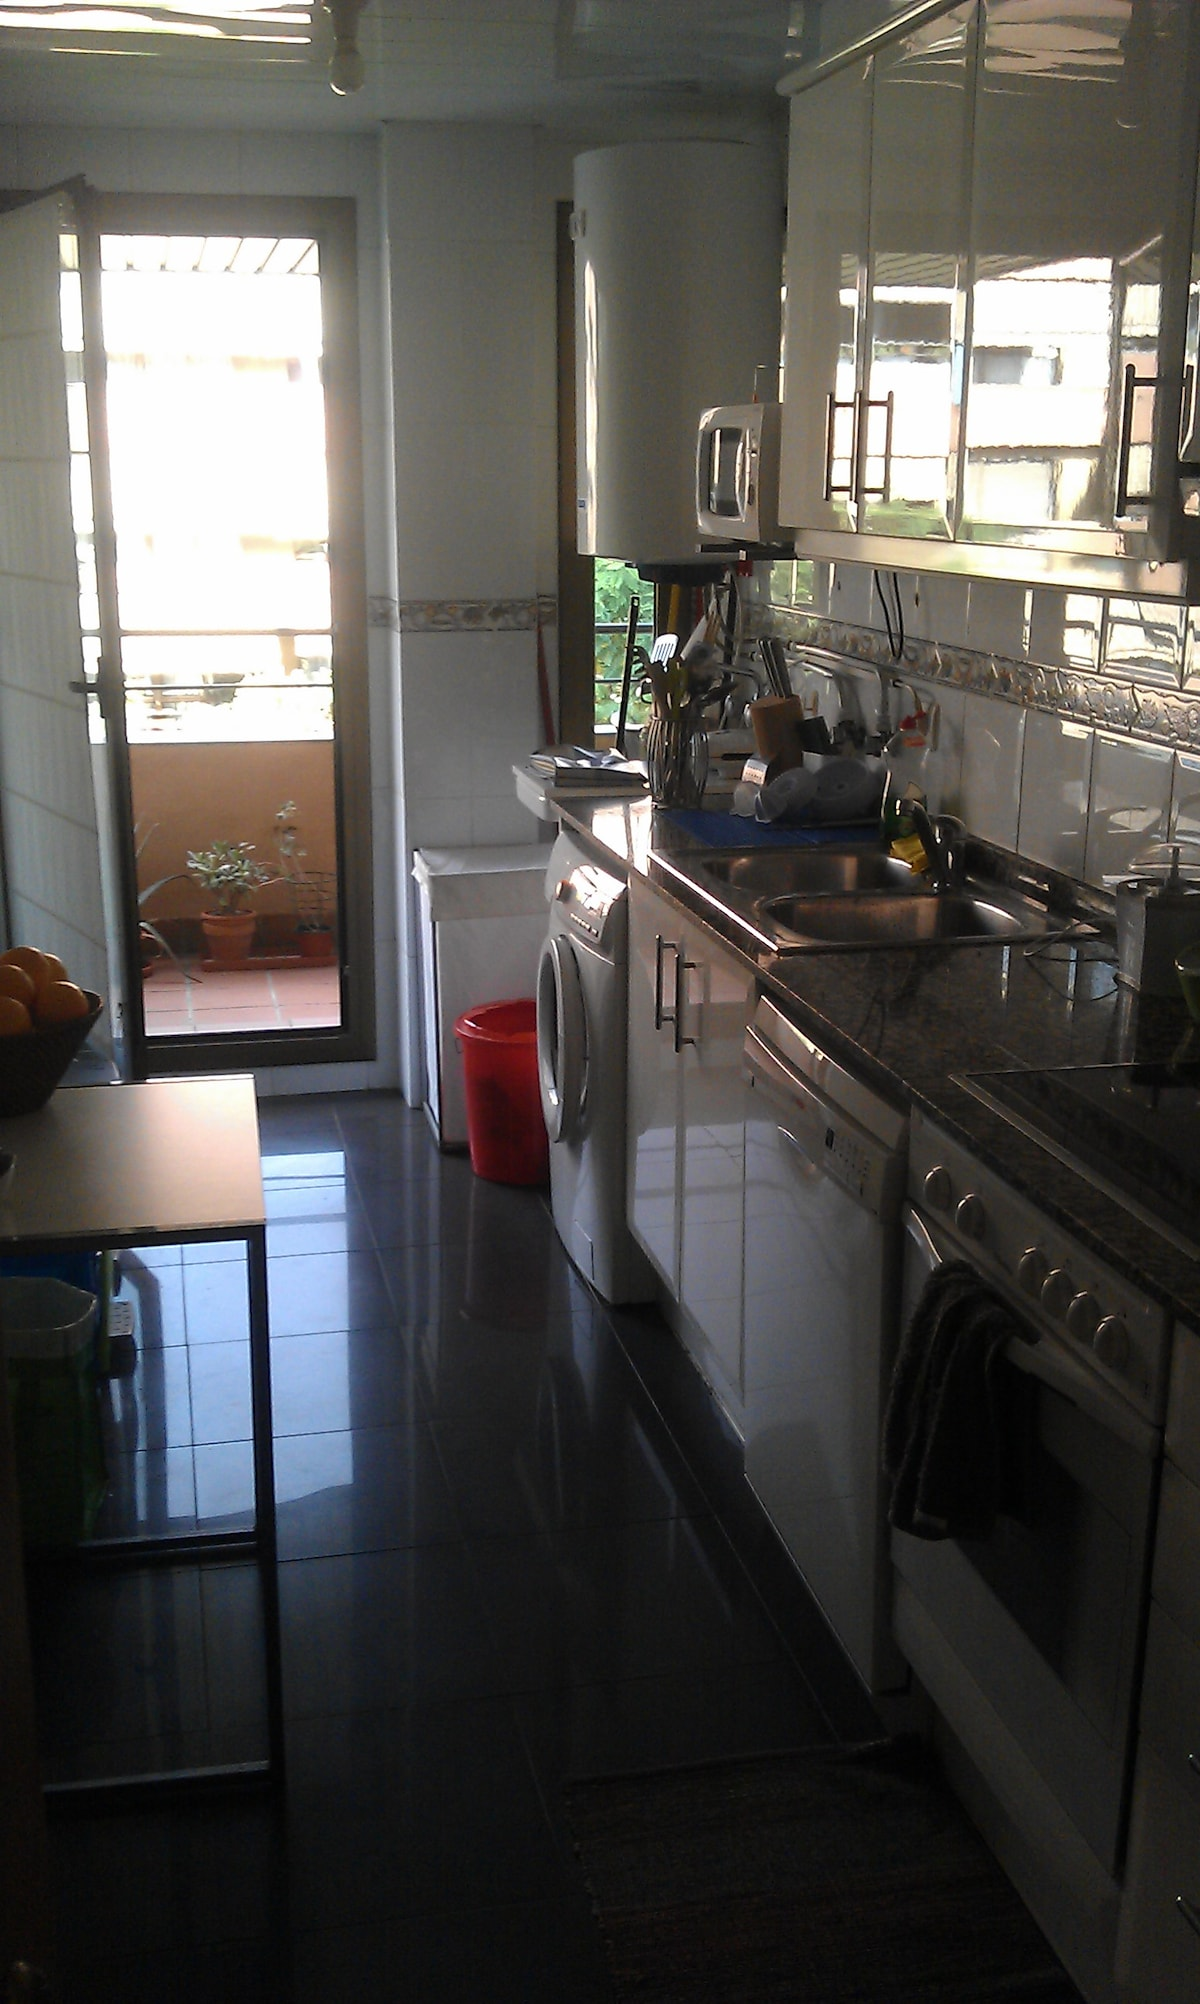 The kitchen is large and full equipped. Feel free to use the washing machine.  La cocina es amplia y está bien equipada. Se puede usar la lavadora.